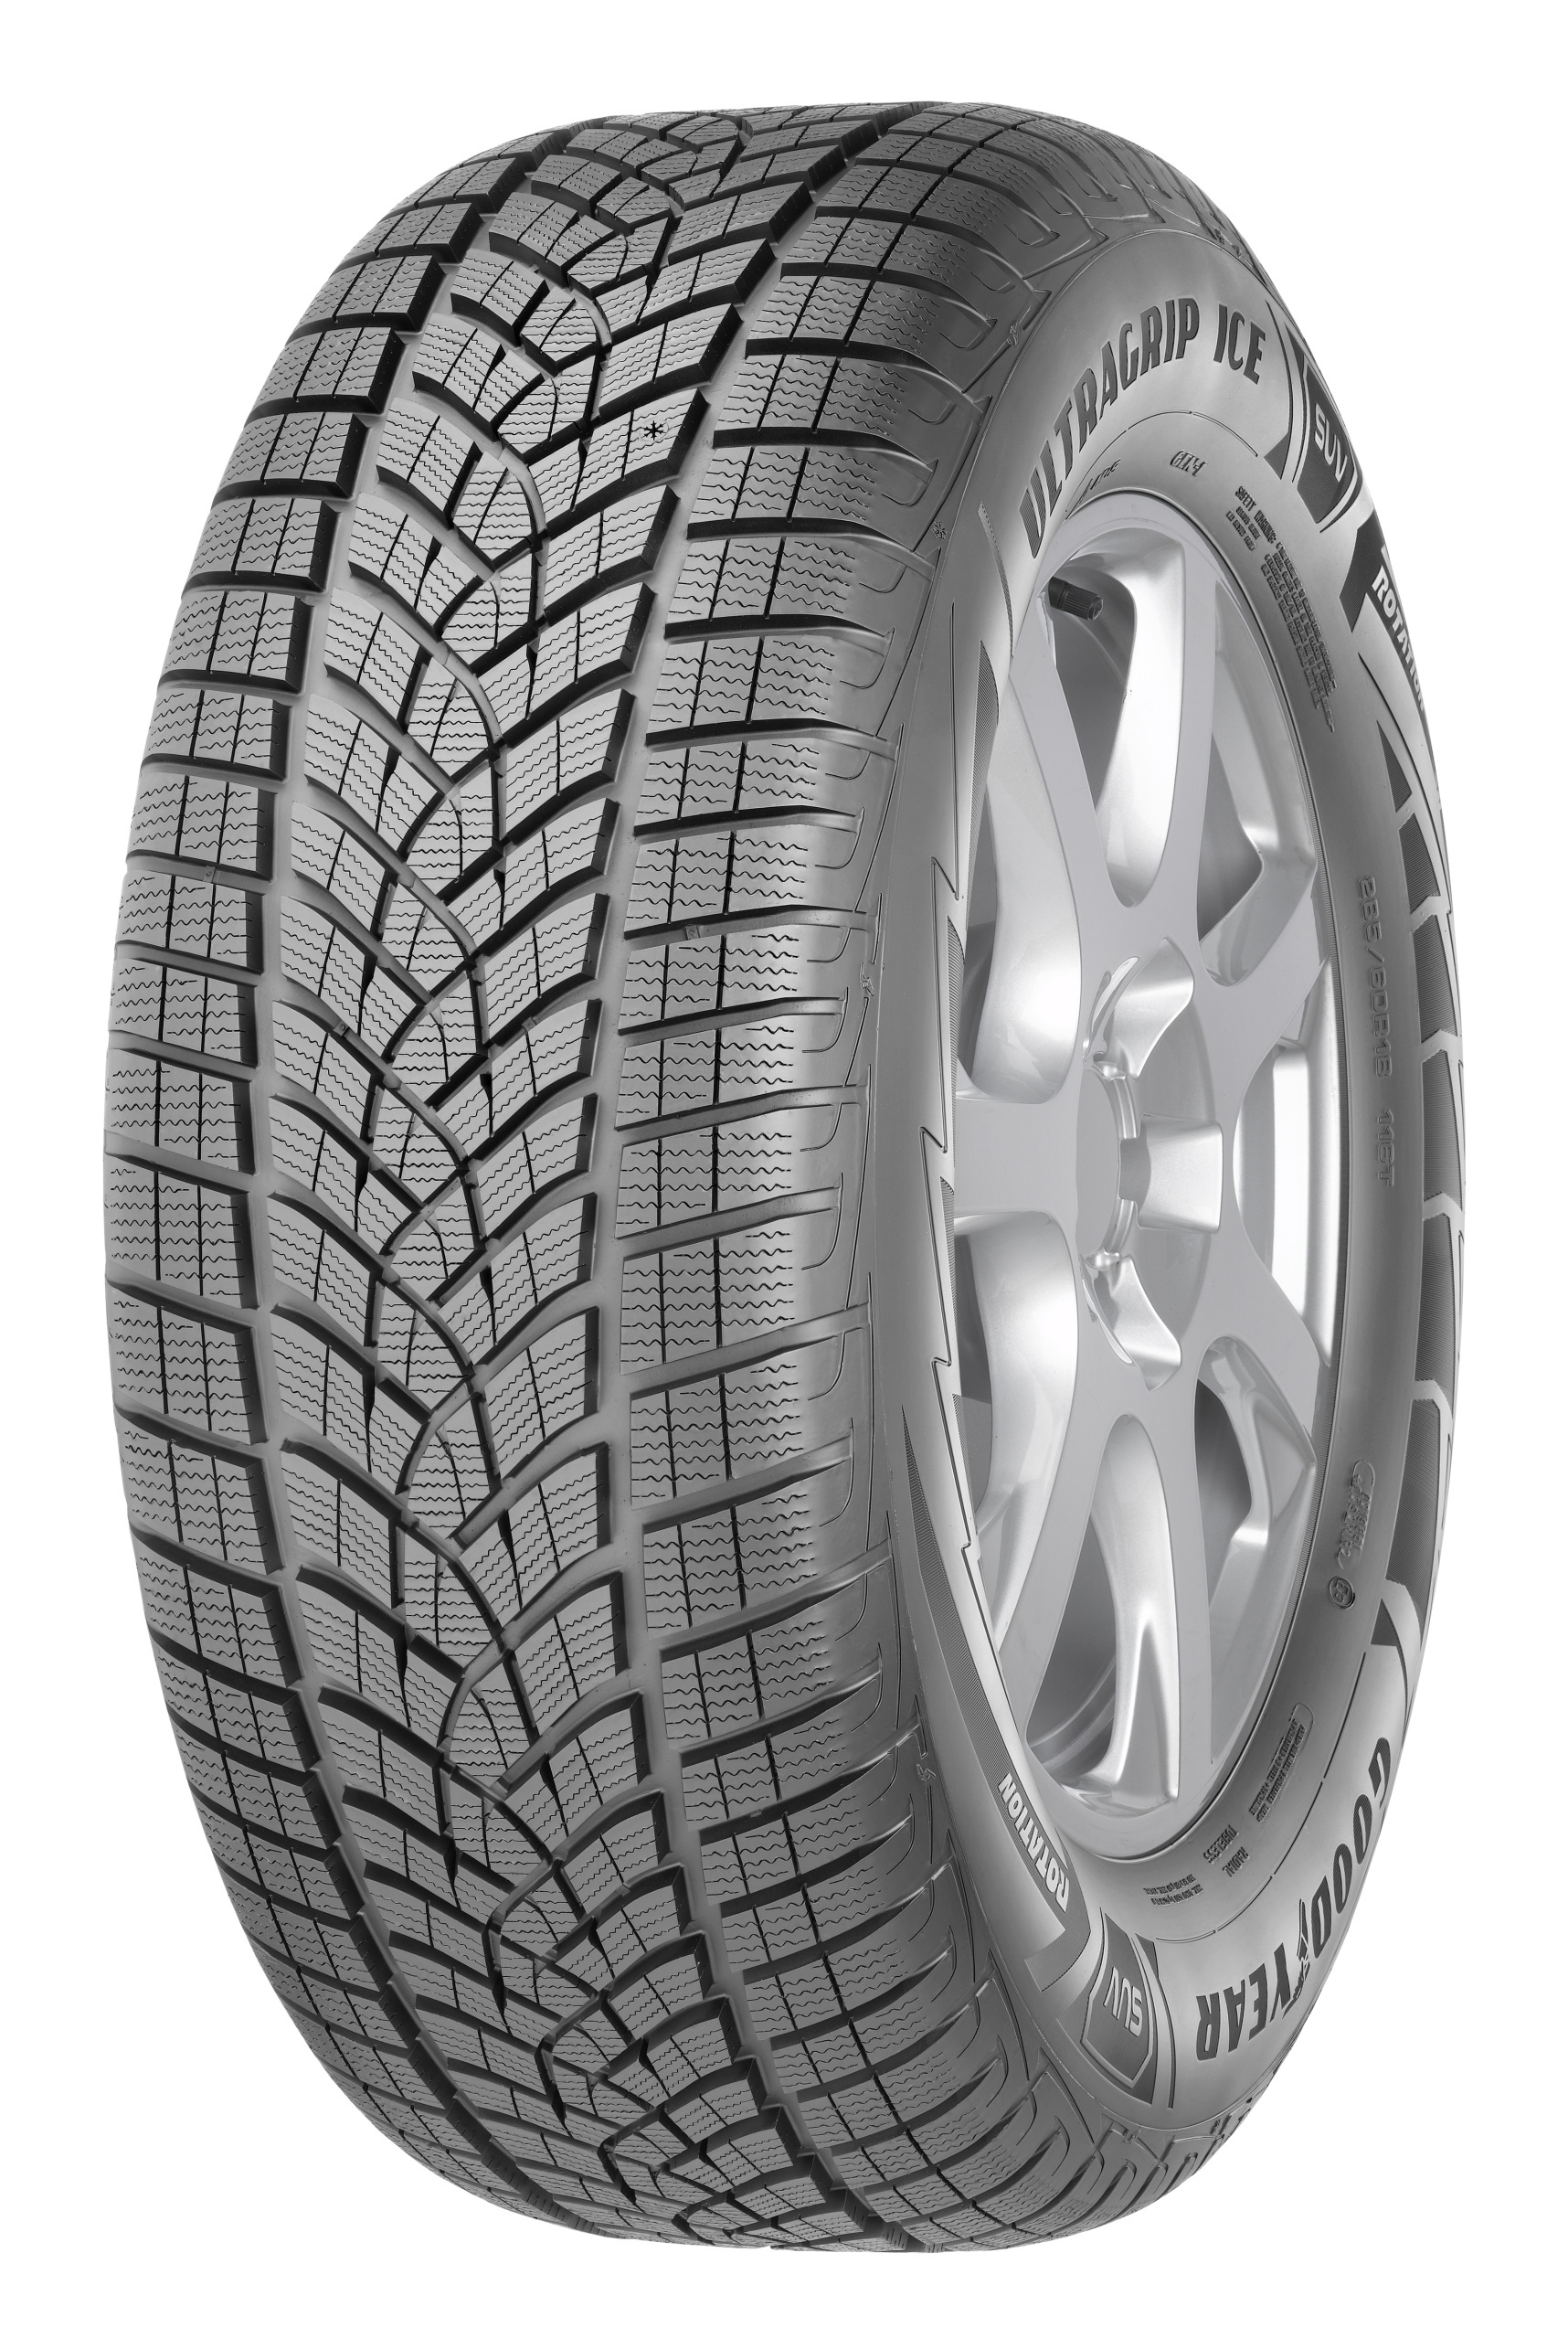 Зимняя шина GoodYear UltraGrip Ice SUV G1 265/50 R19 110T FR XL